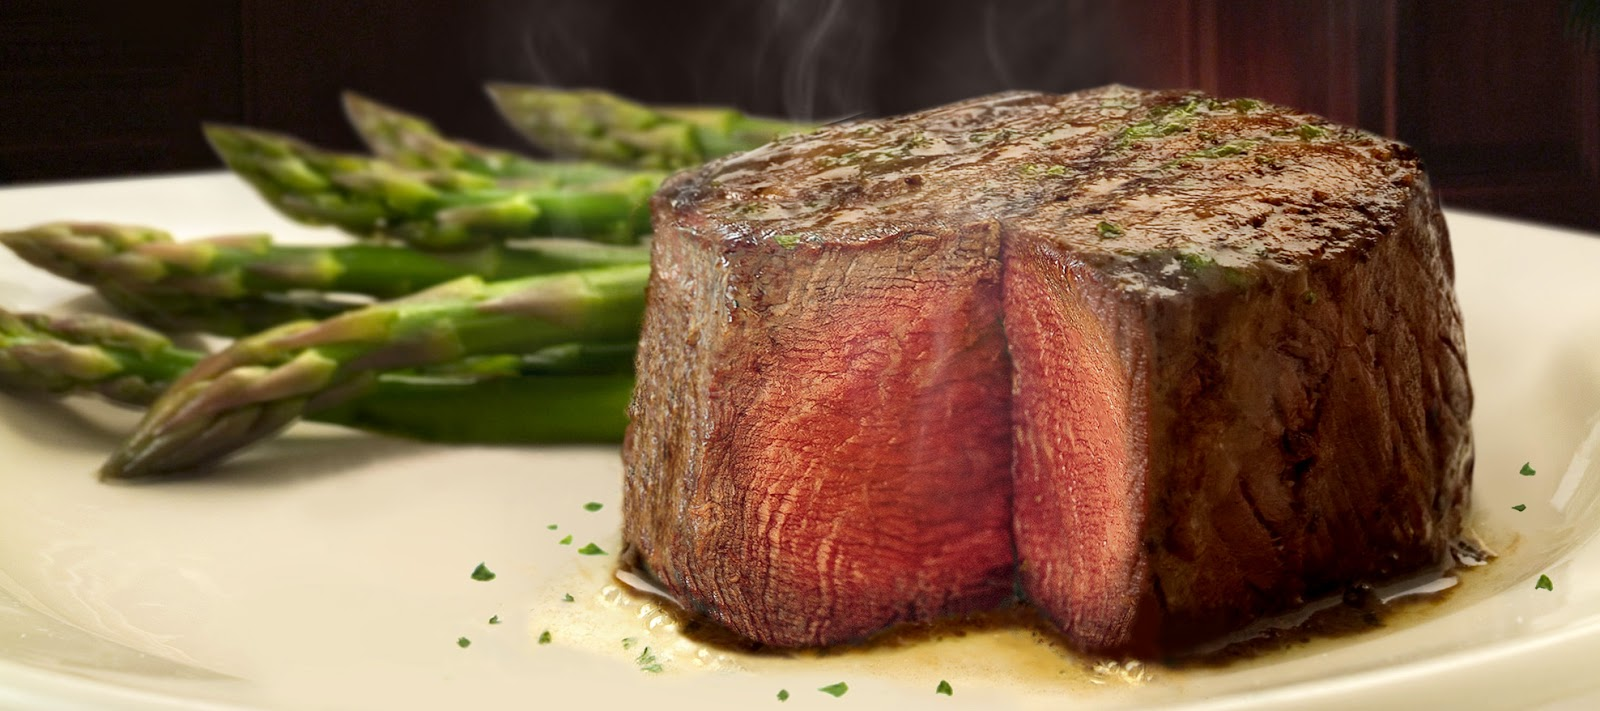 Ruth's Chris Steak House Ruth Fertel's legacy lives on through our sizzling steaks, award-winning wine list of + wines & signature handcrafted cocktails.